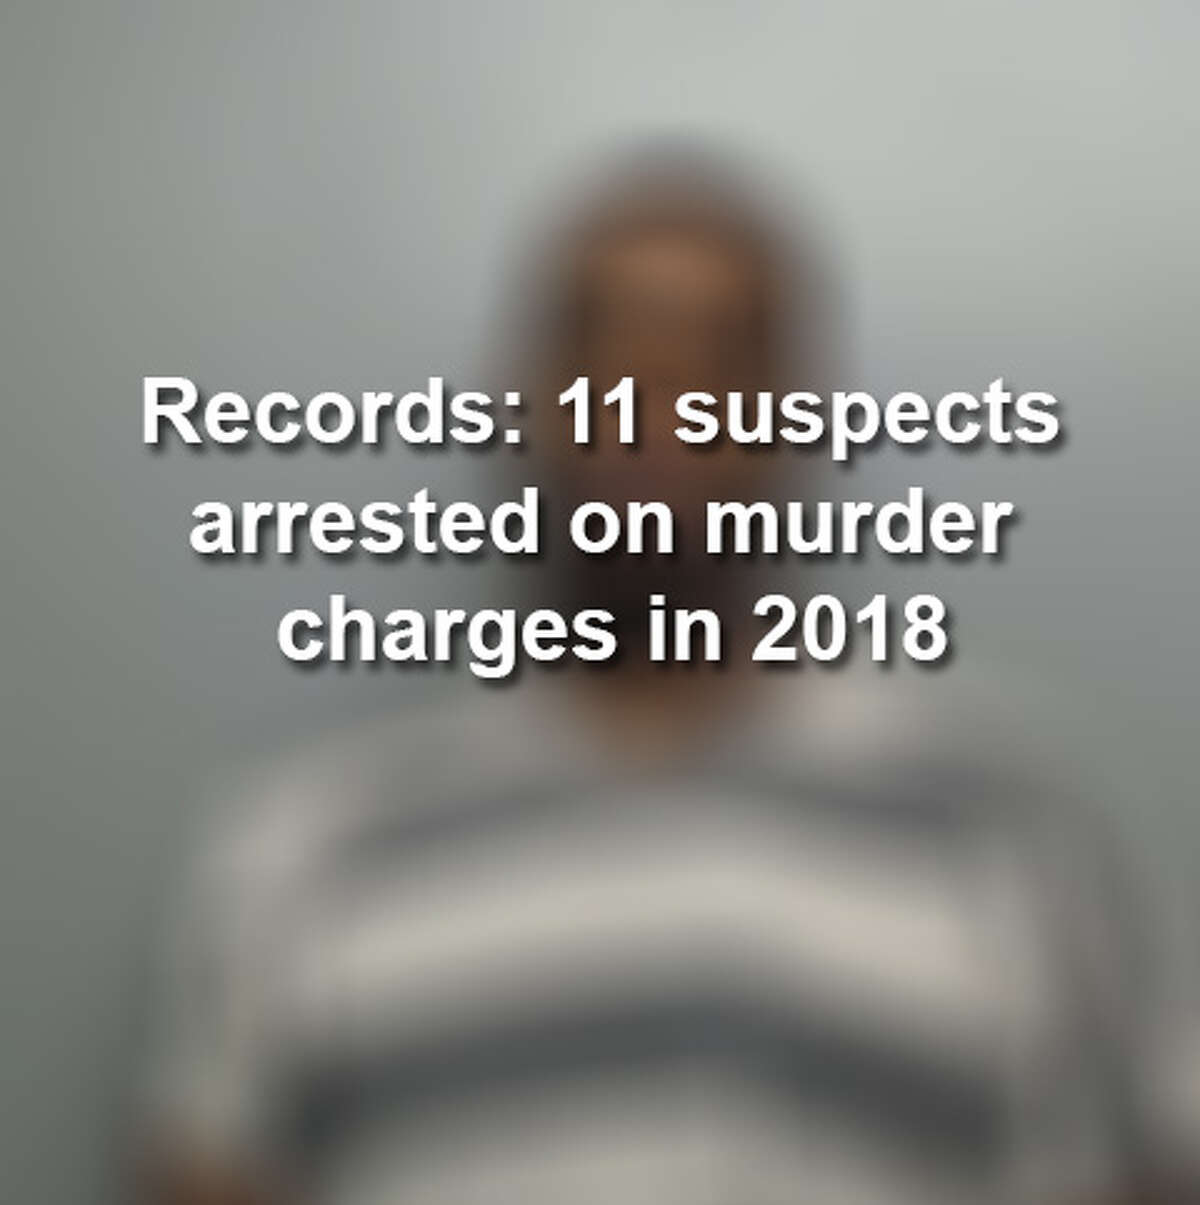 Keep scrolling to see the individuals indicted on murder charges in 2018 in Laredo.